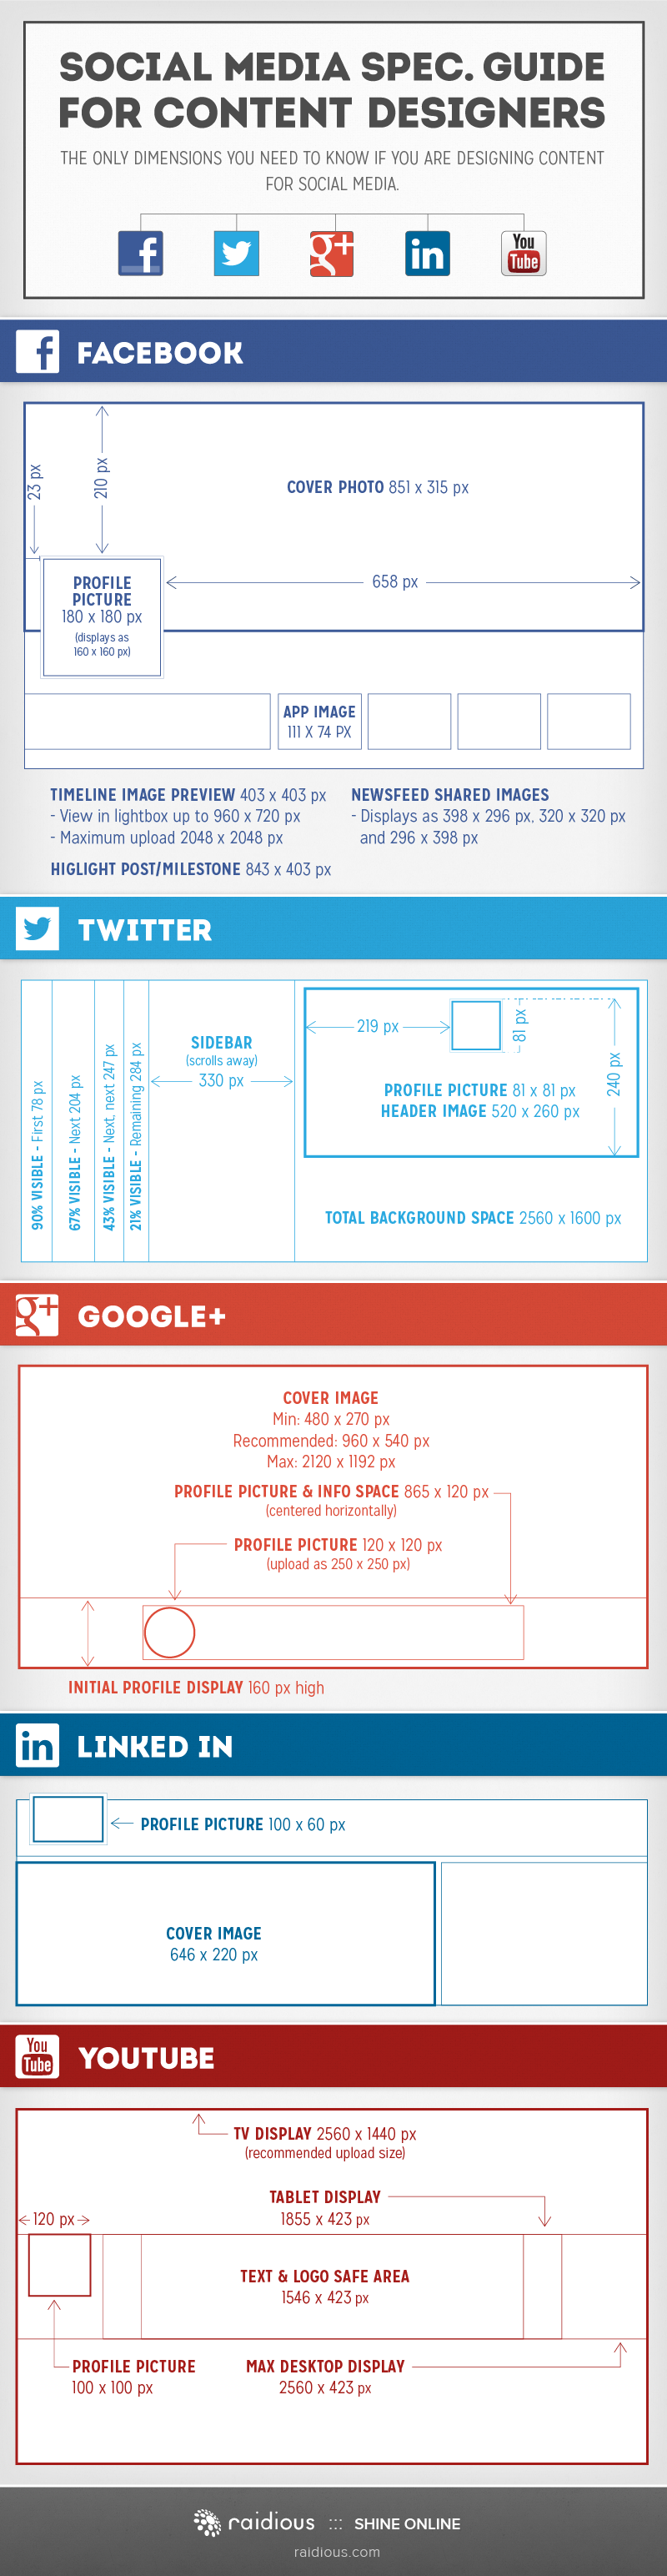 Guide to Social Media Image Dimensions